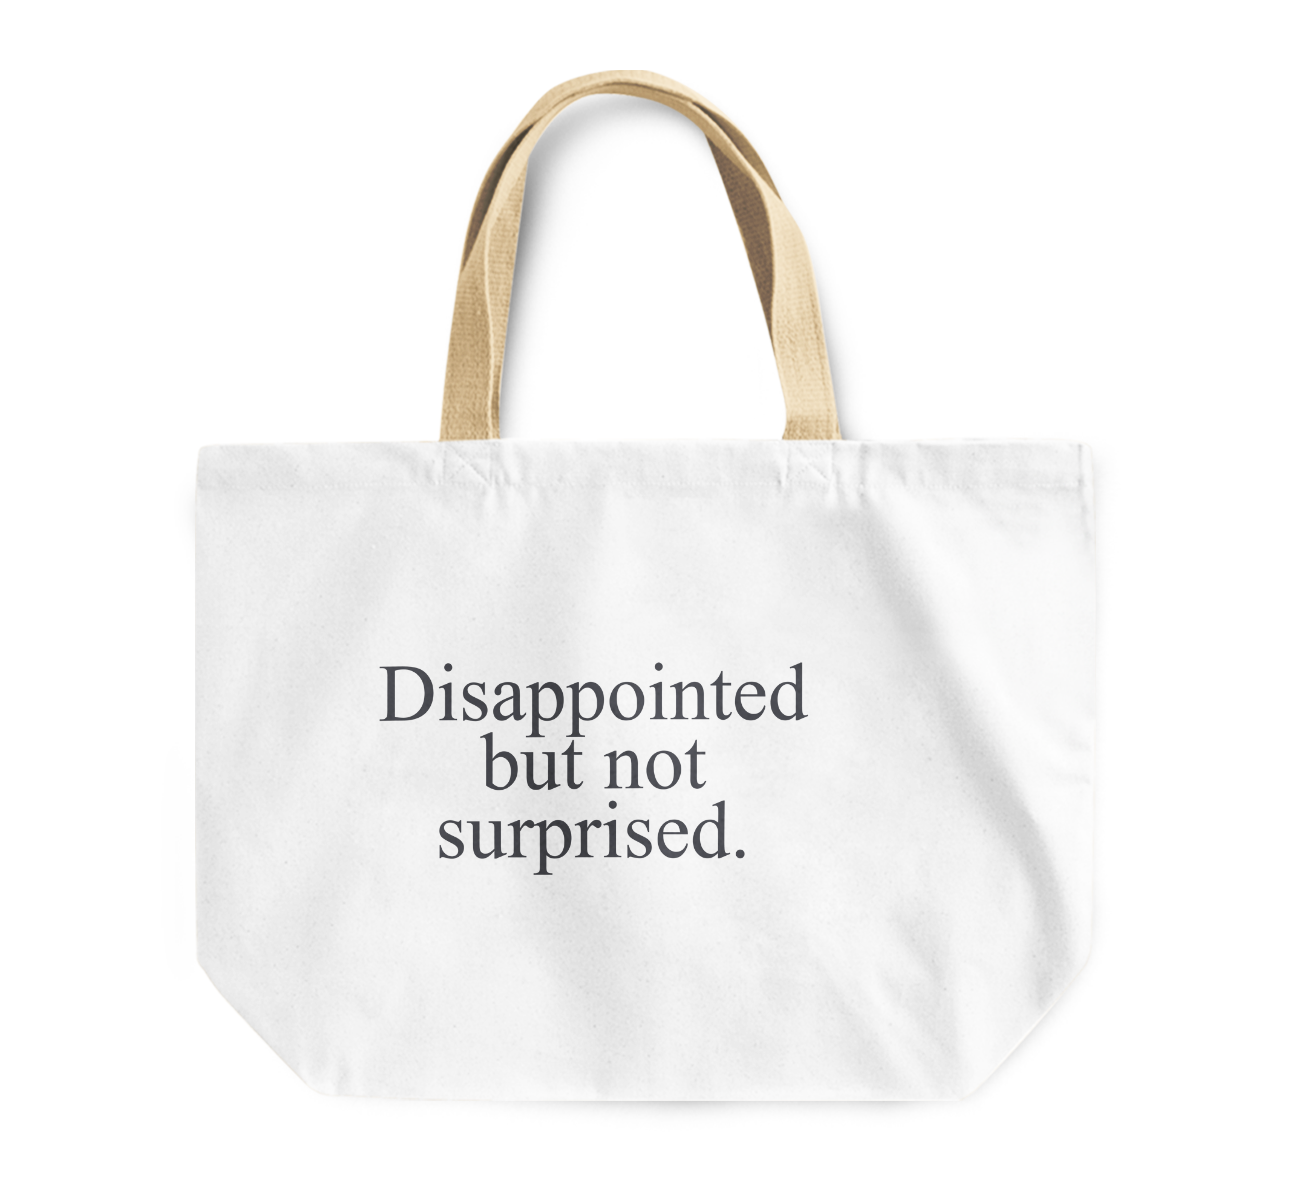 Tote Bag Dissapointed But Not Surprised Reusable Shopping Bag By Loud Universe